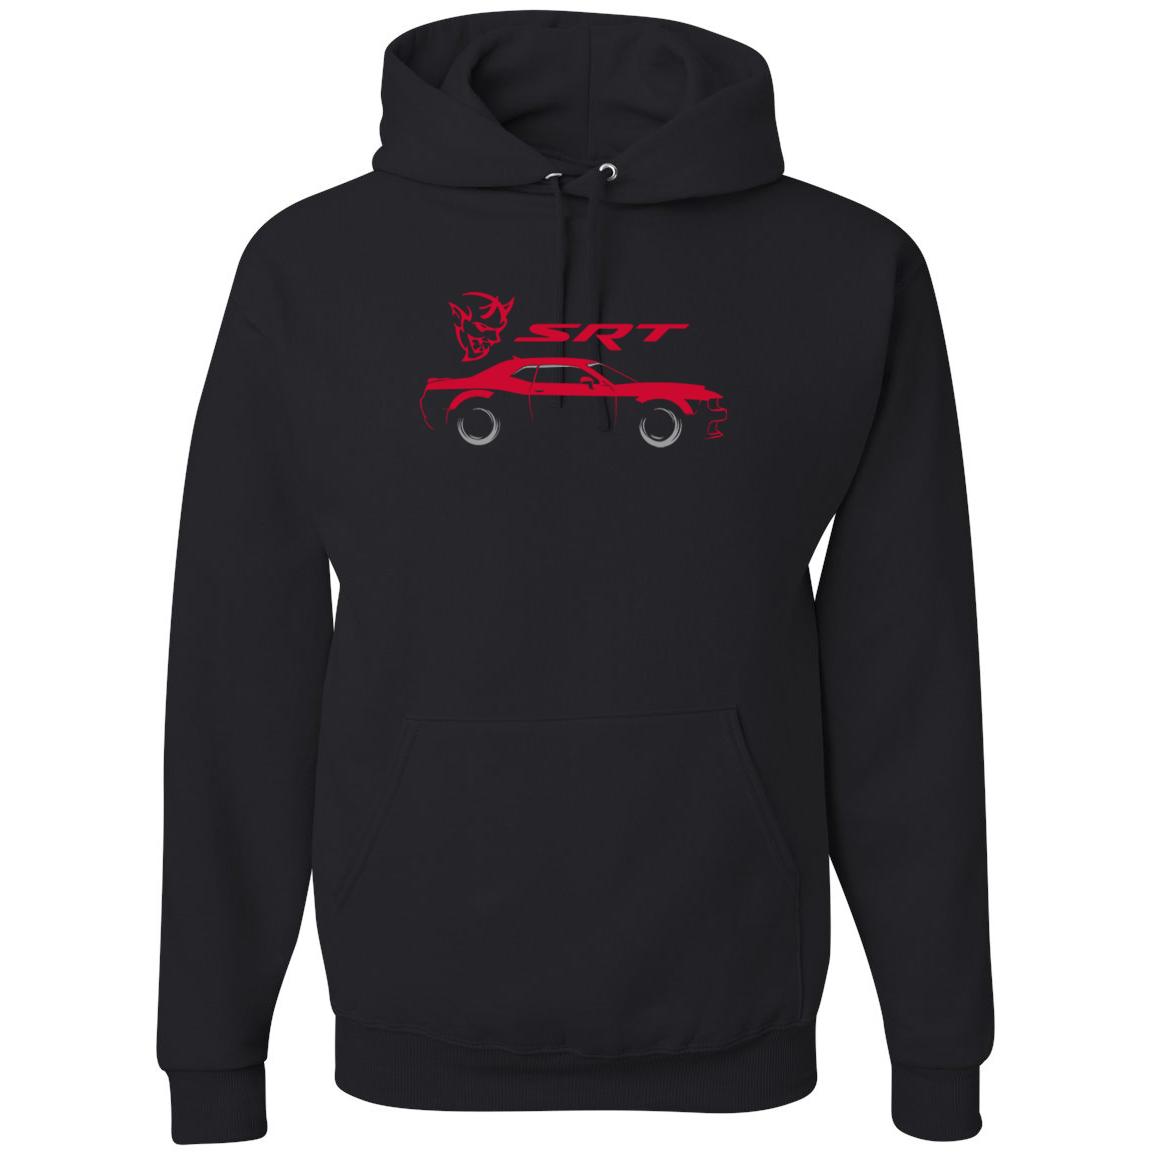 SRT Demon Speedster Racing Car Silhouette Emblem Cars and